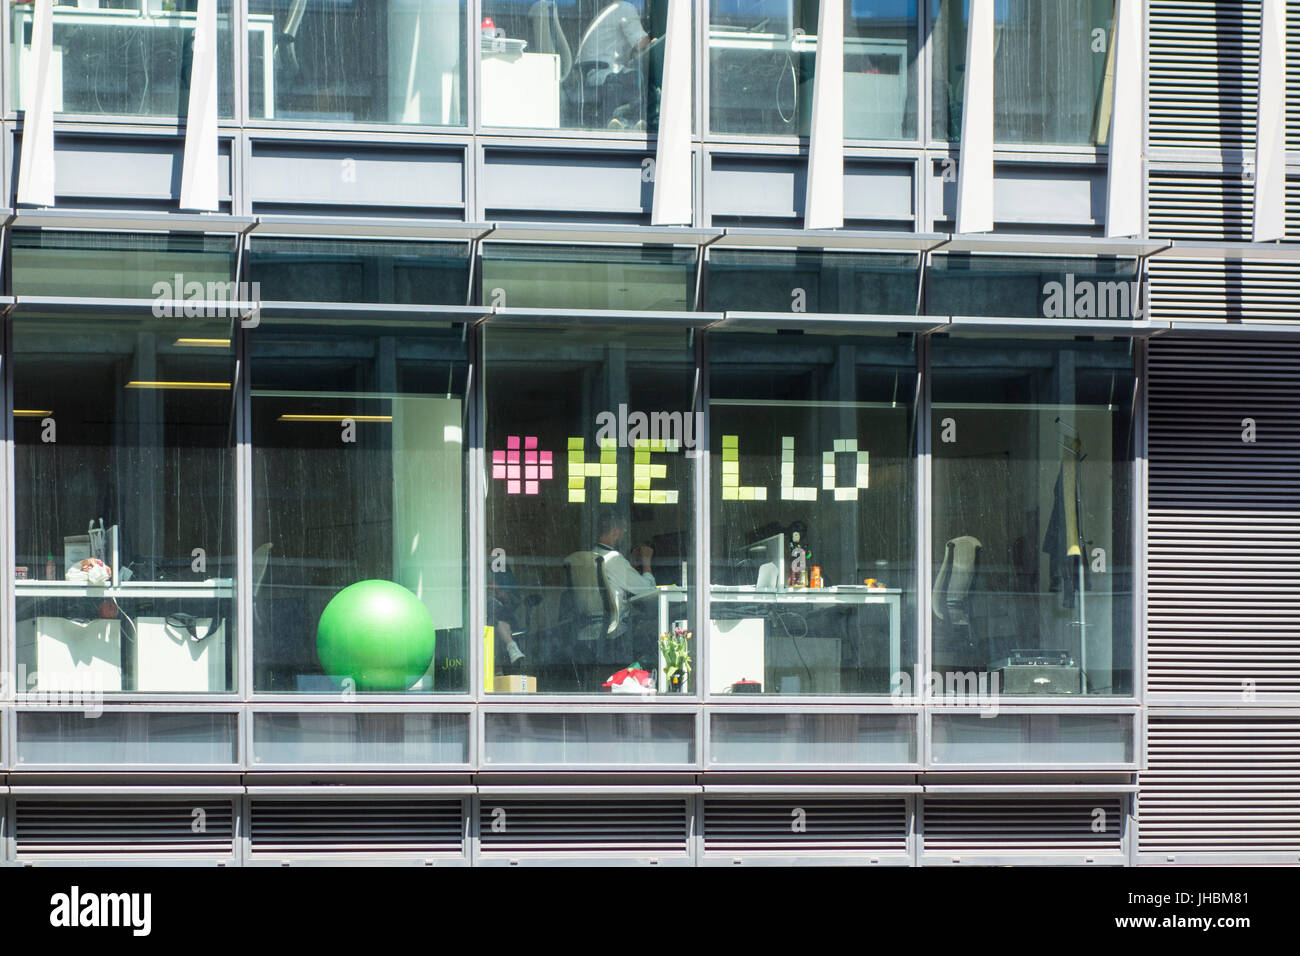 Office worker spells out 'hello' with post it notes on window, London, UK - Stock Image